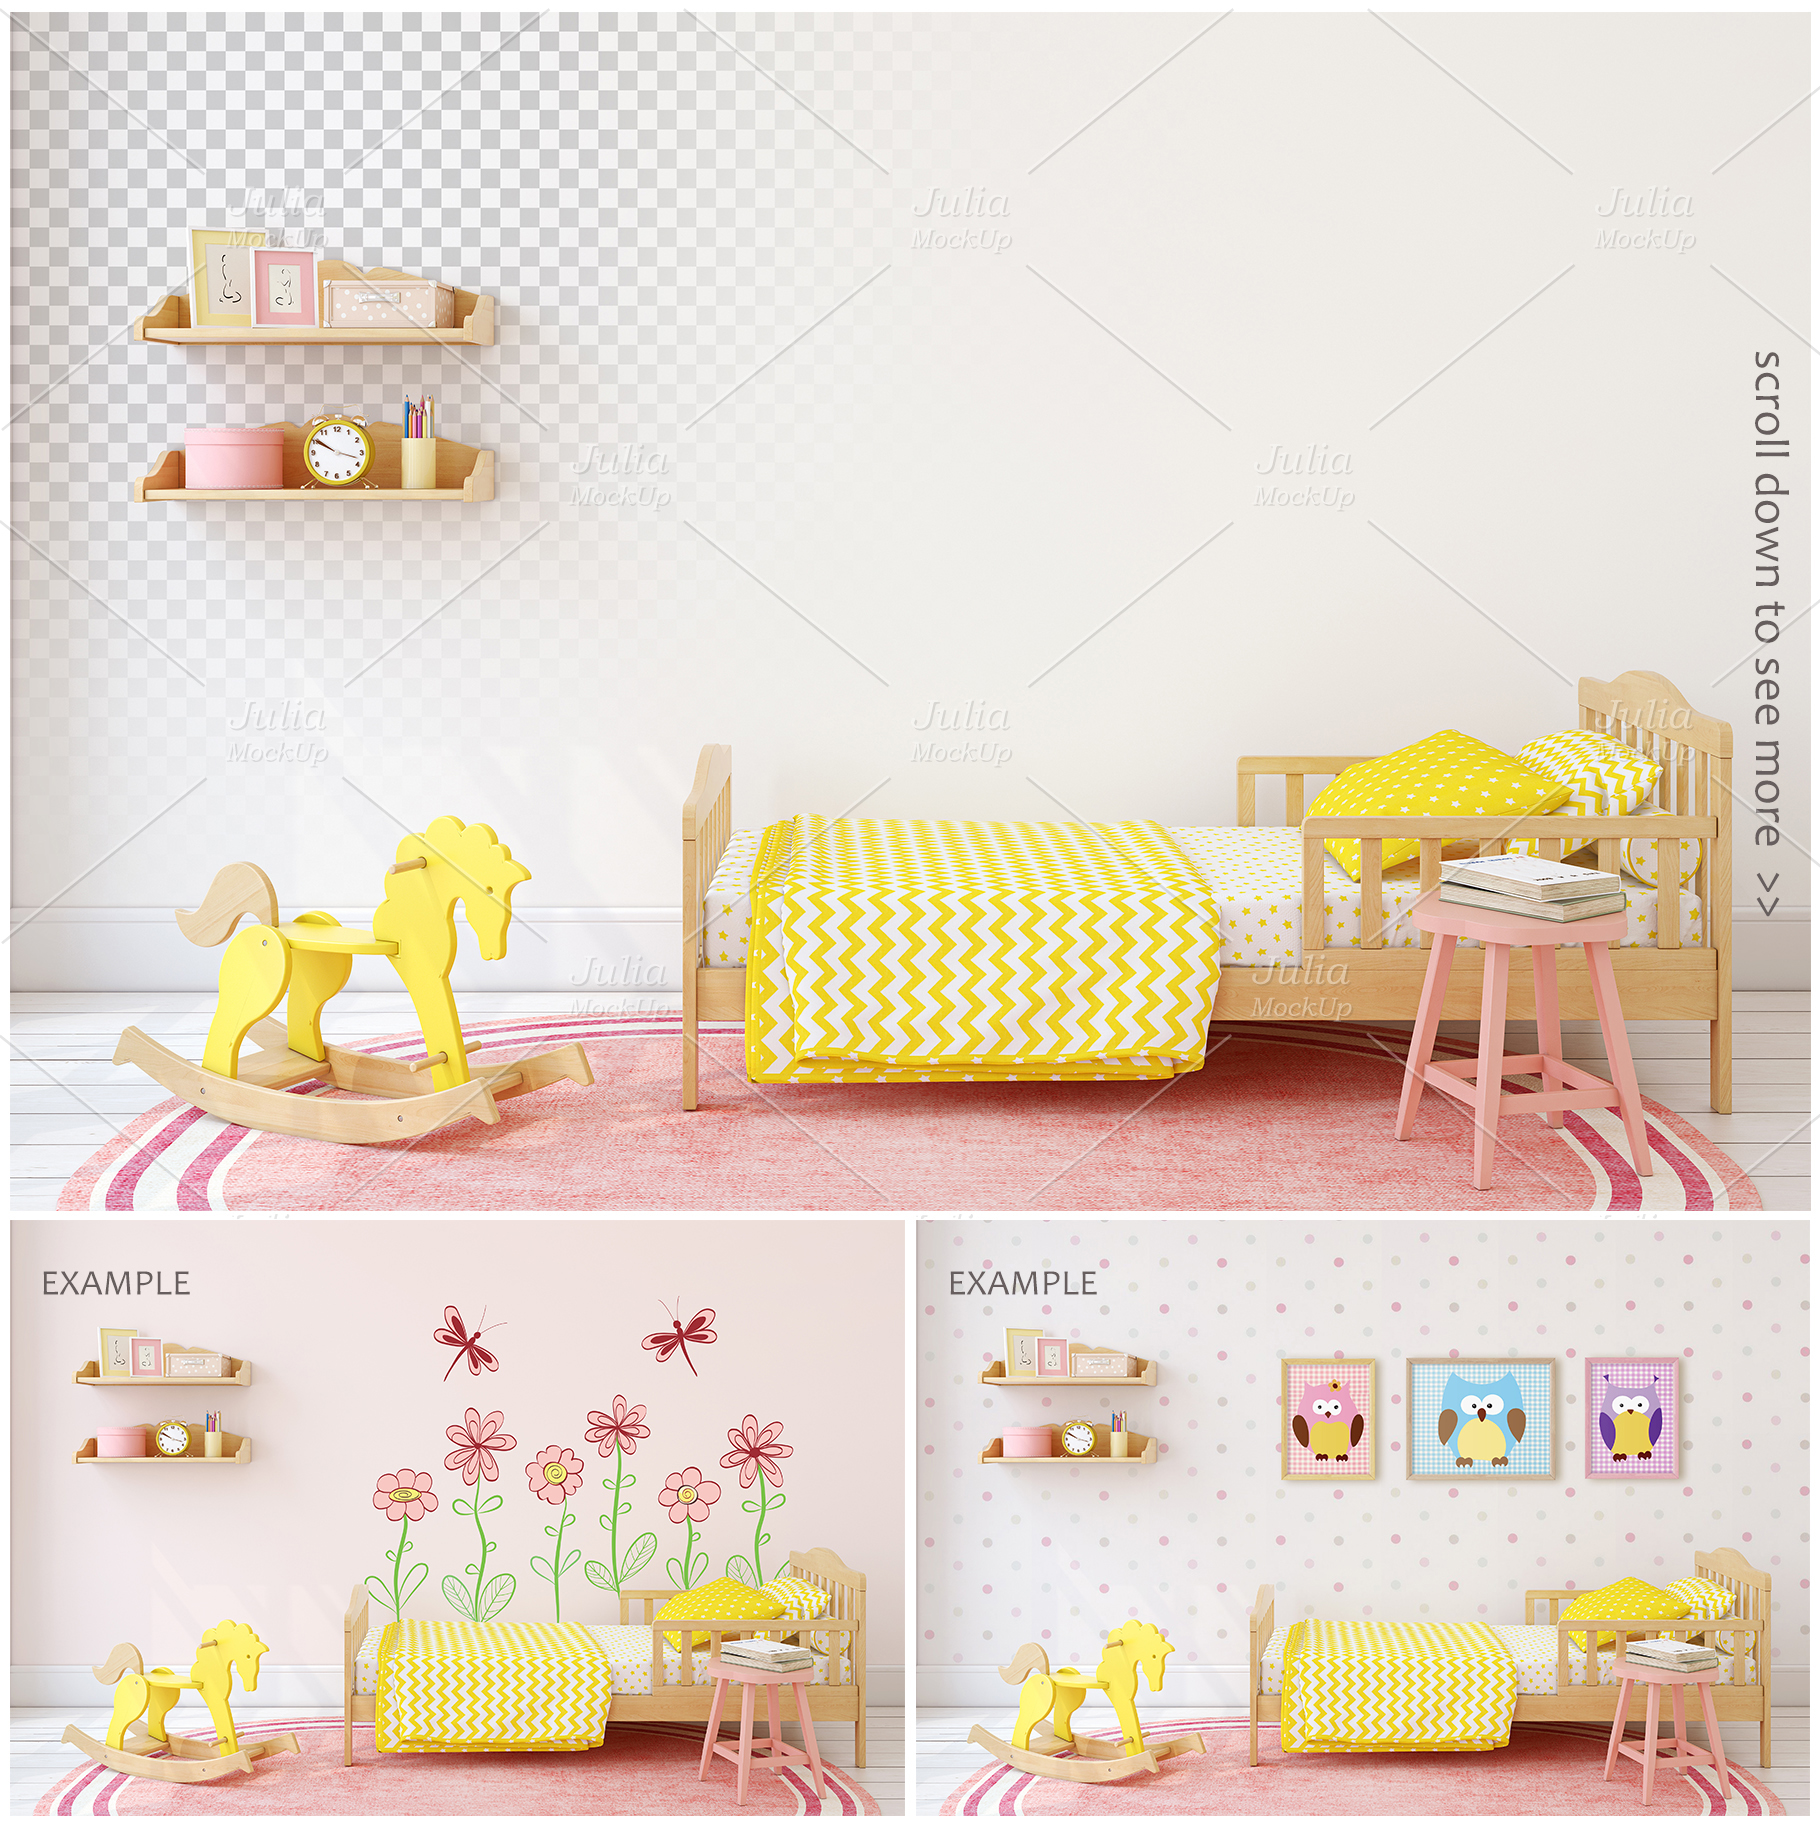 Kid's interiors. Wall&Frames Mockup. example image 4